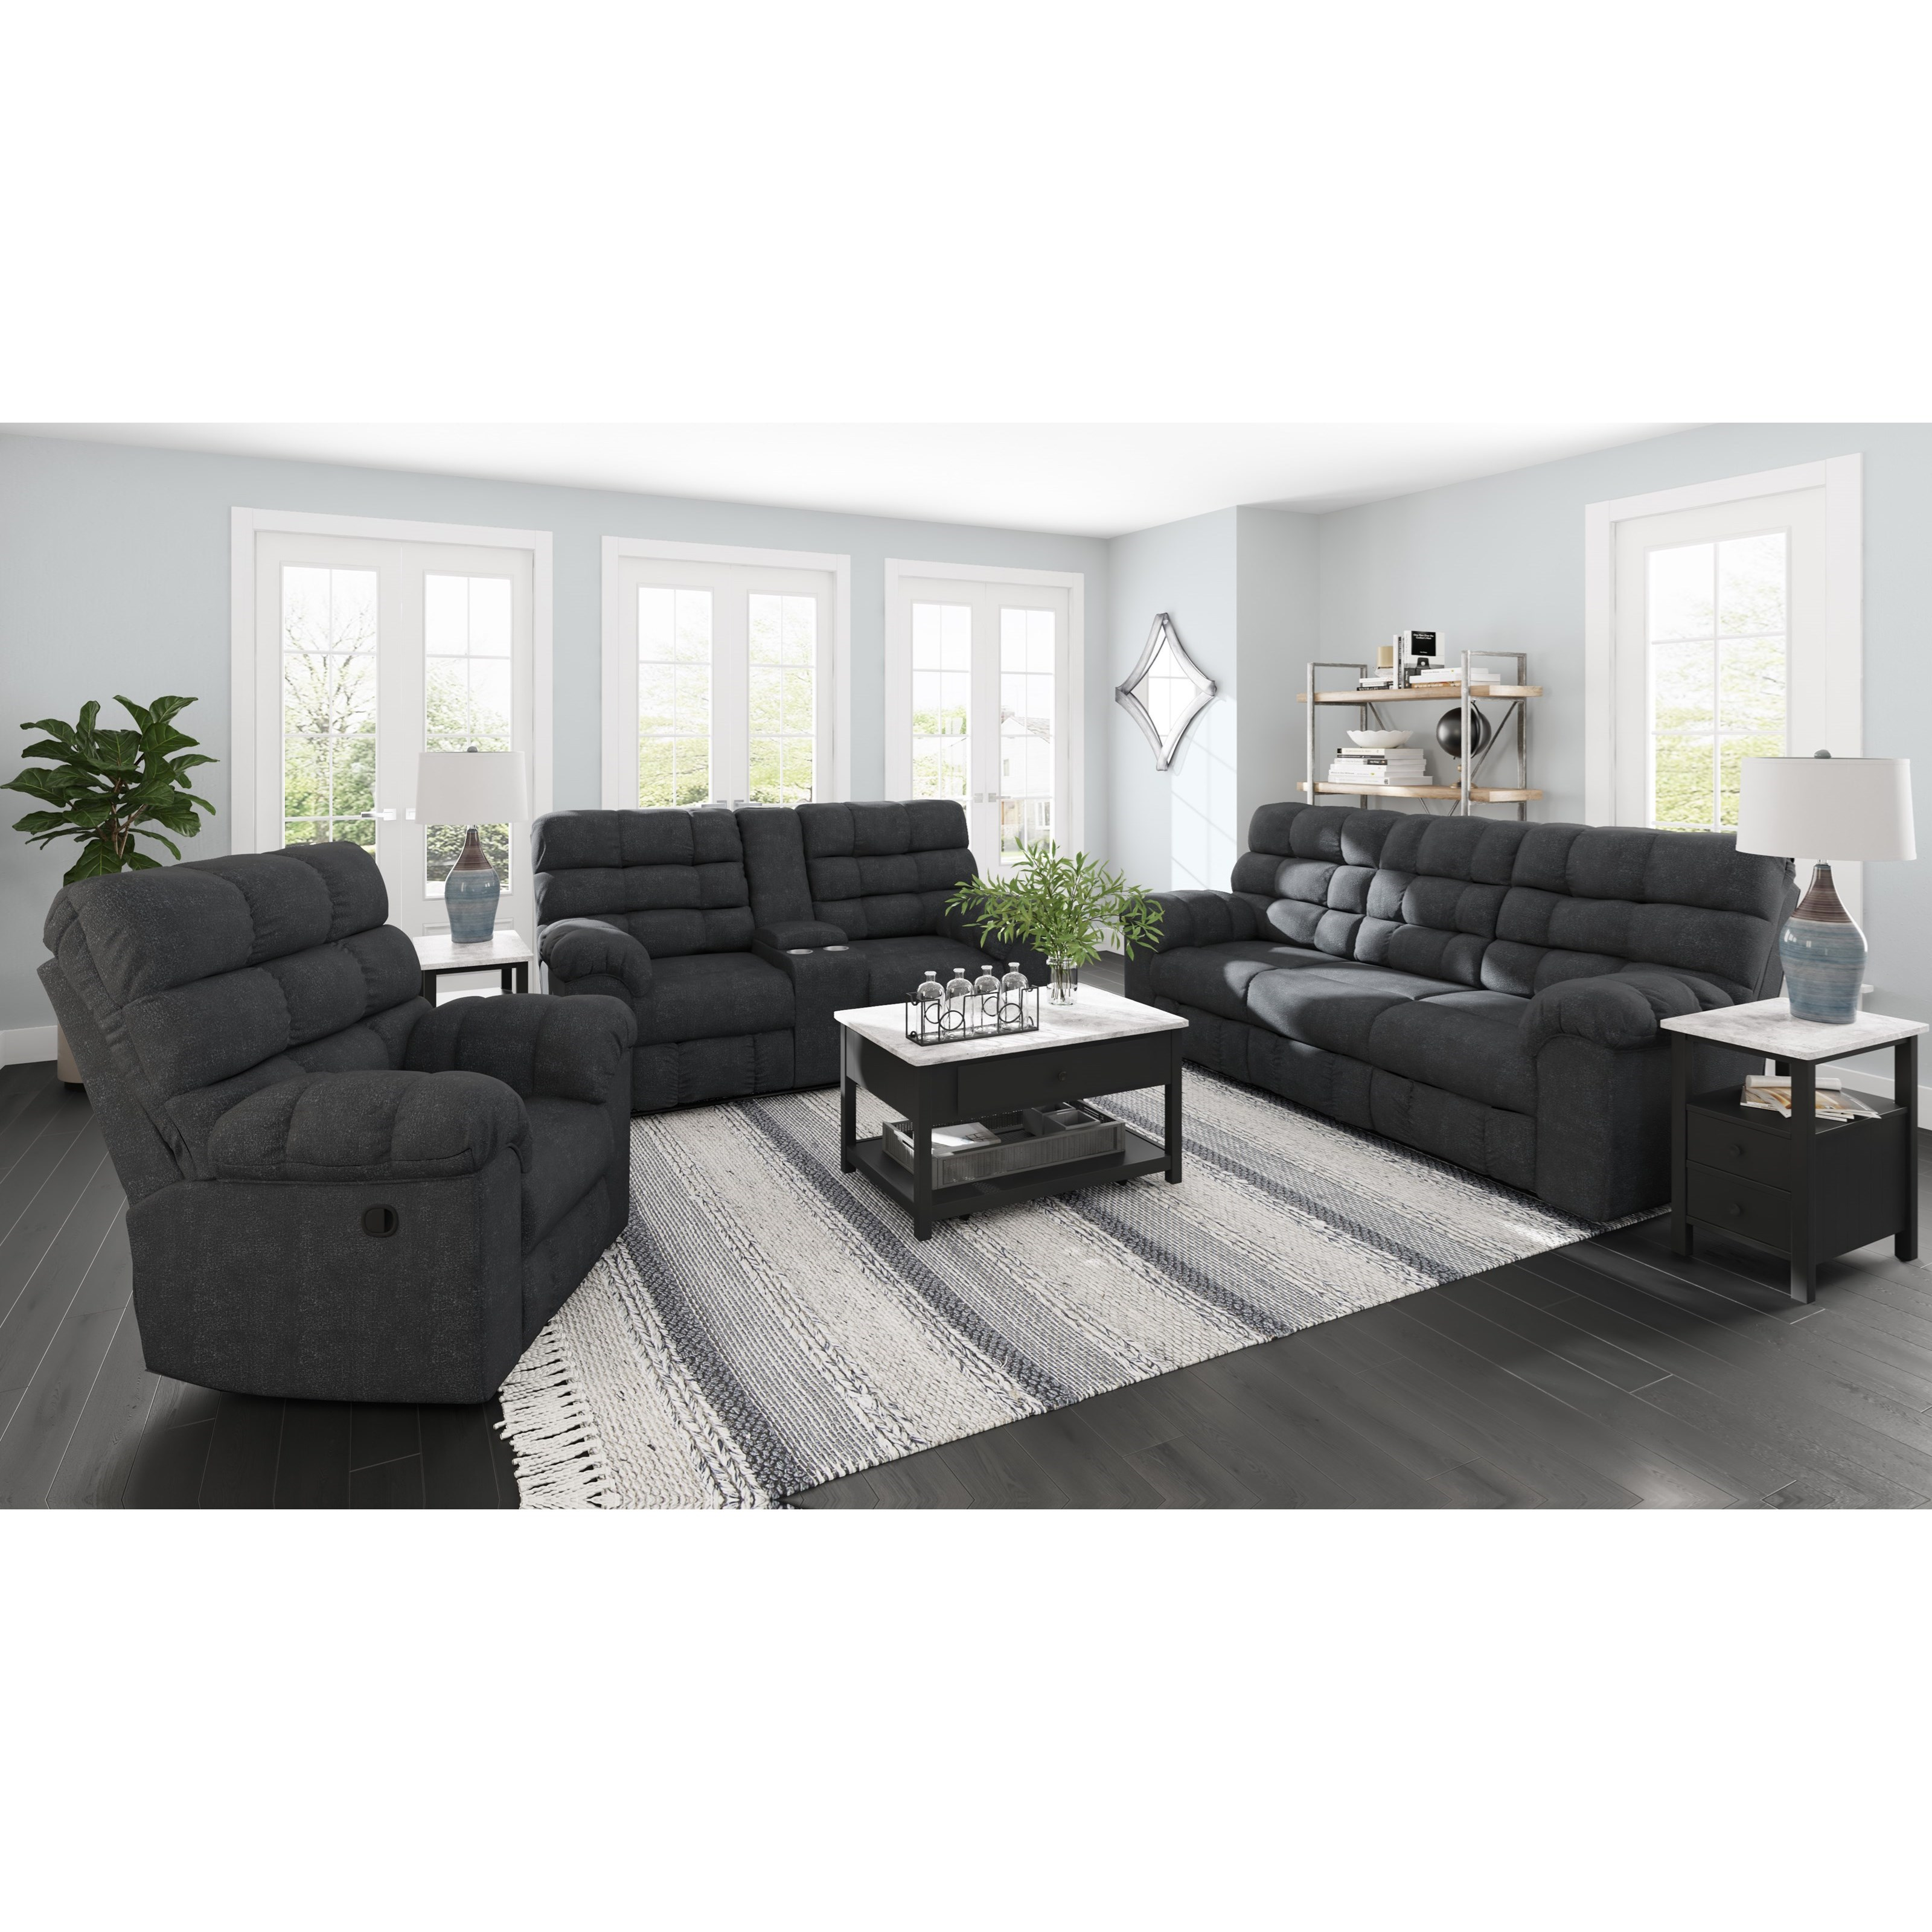 Wilhurst Reclining Living Room Group by Signature Design by Ashley at Catalog Outlet